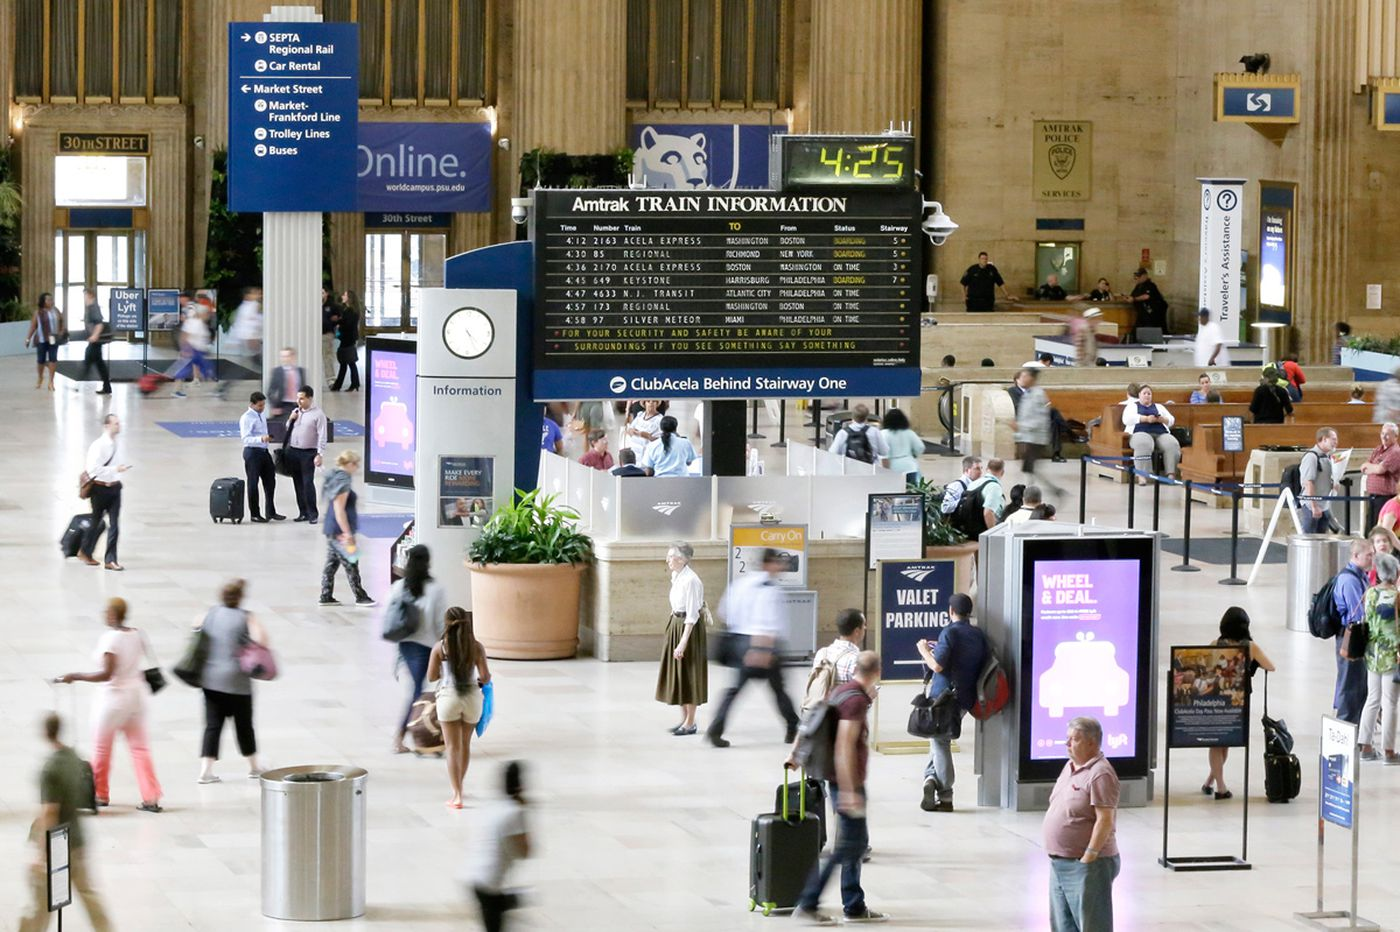 At 30th Street Station, the last echoes of a disappearing sound